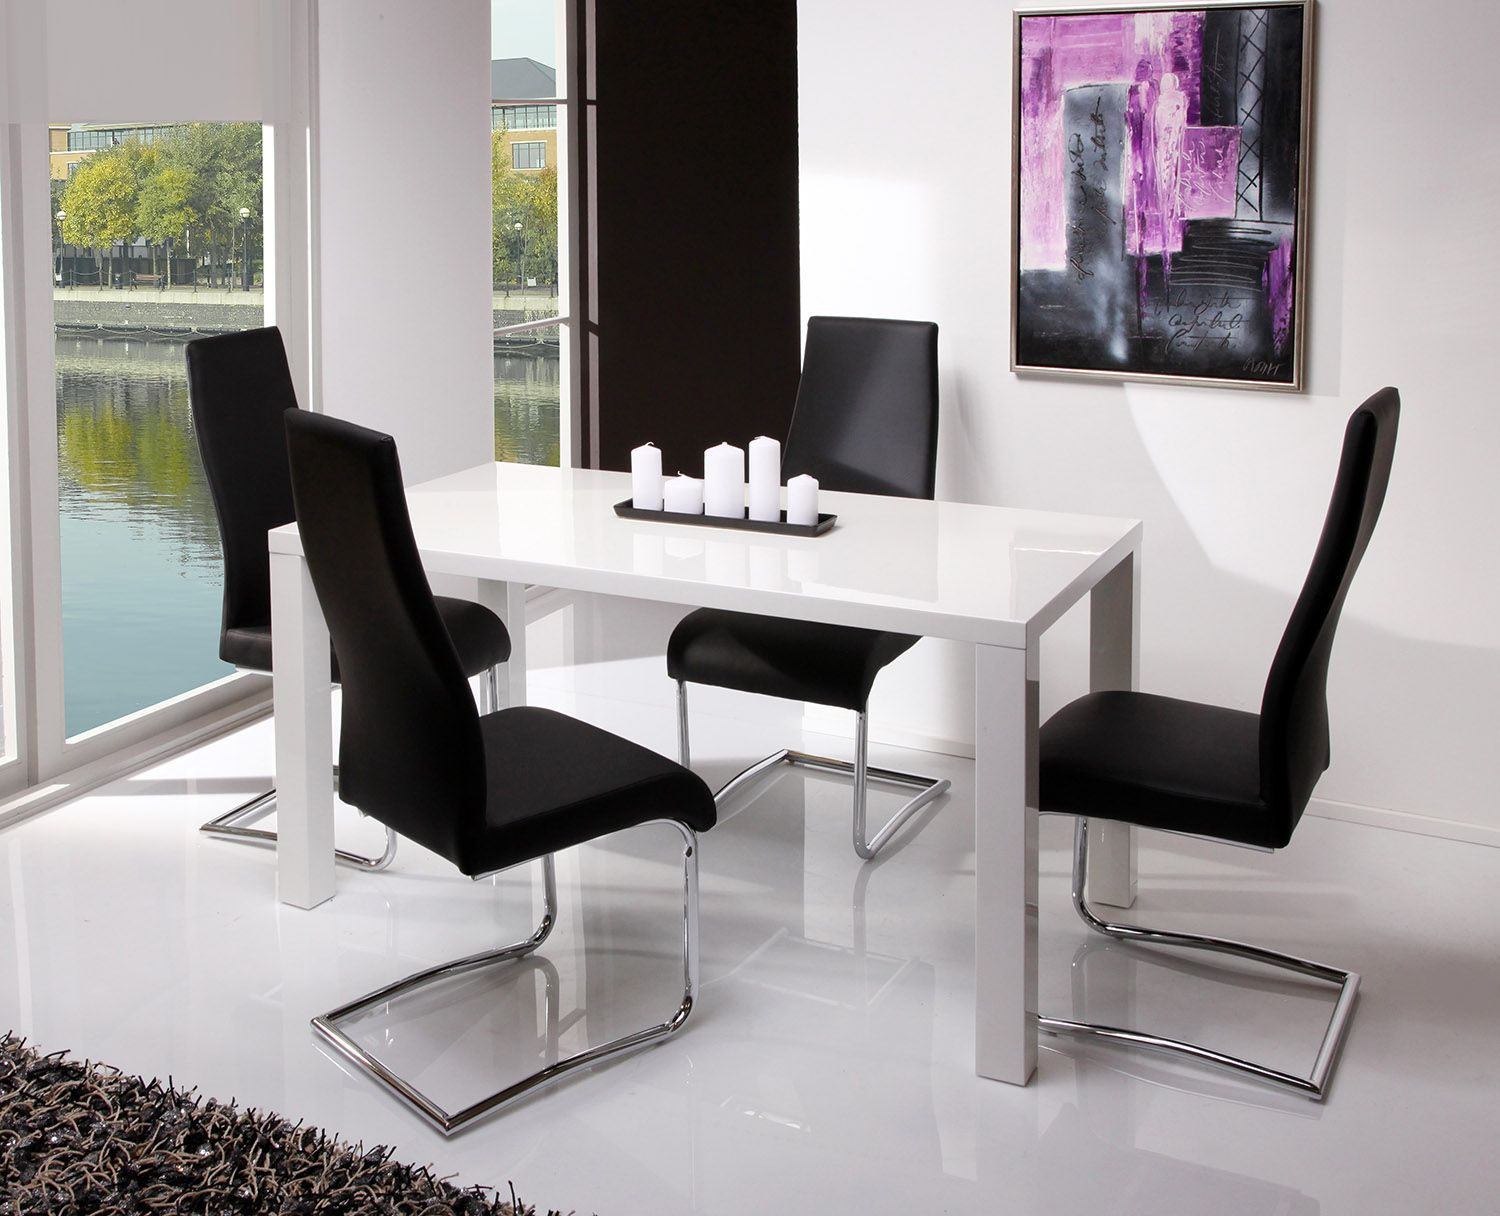 Funky Dining Room Table And Chairs Allure Dining Table Contemporary Dining Table Modern Dining